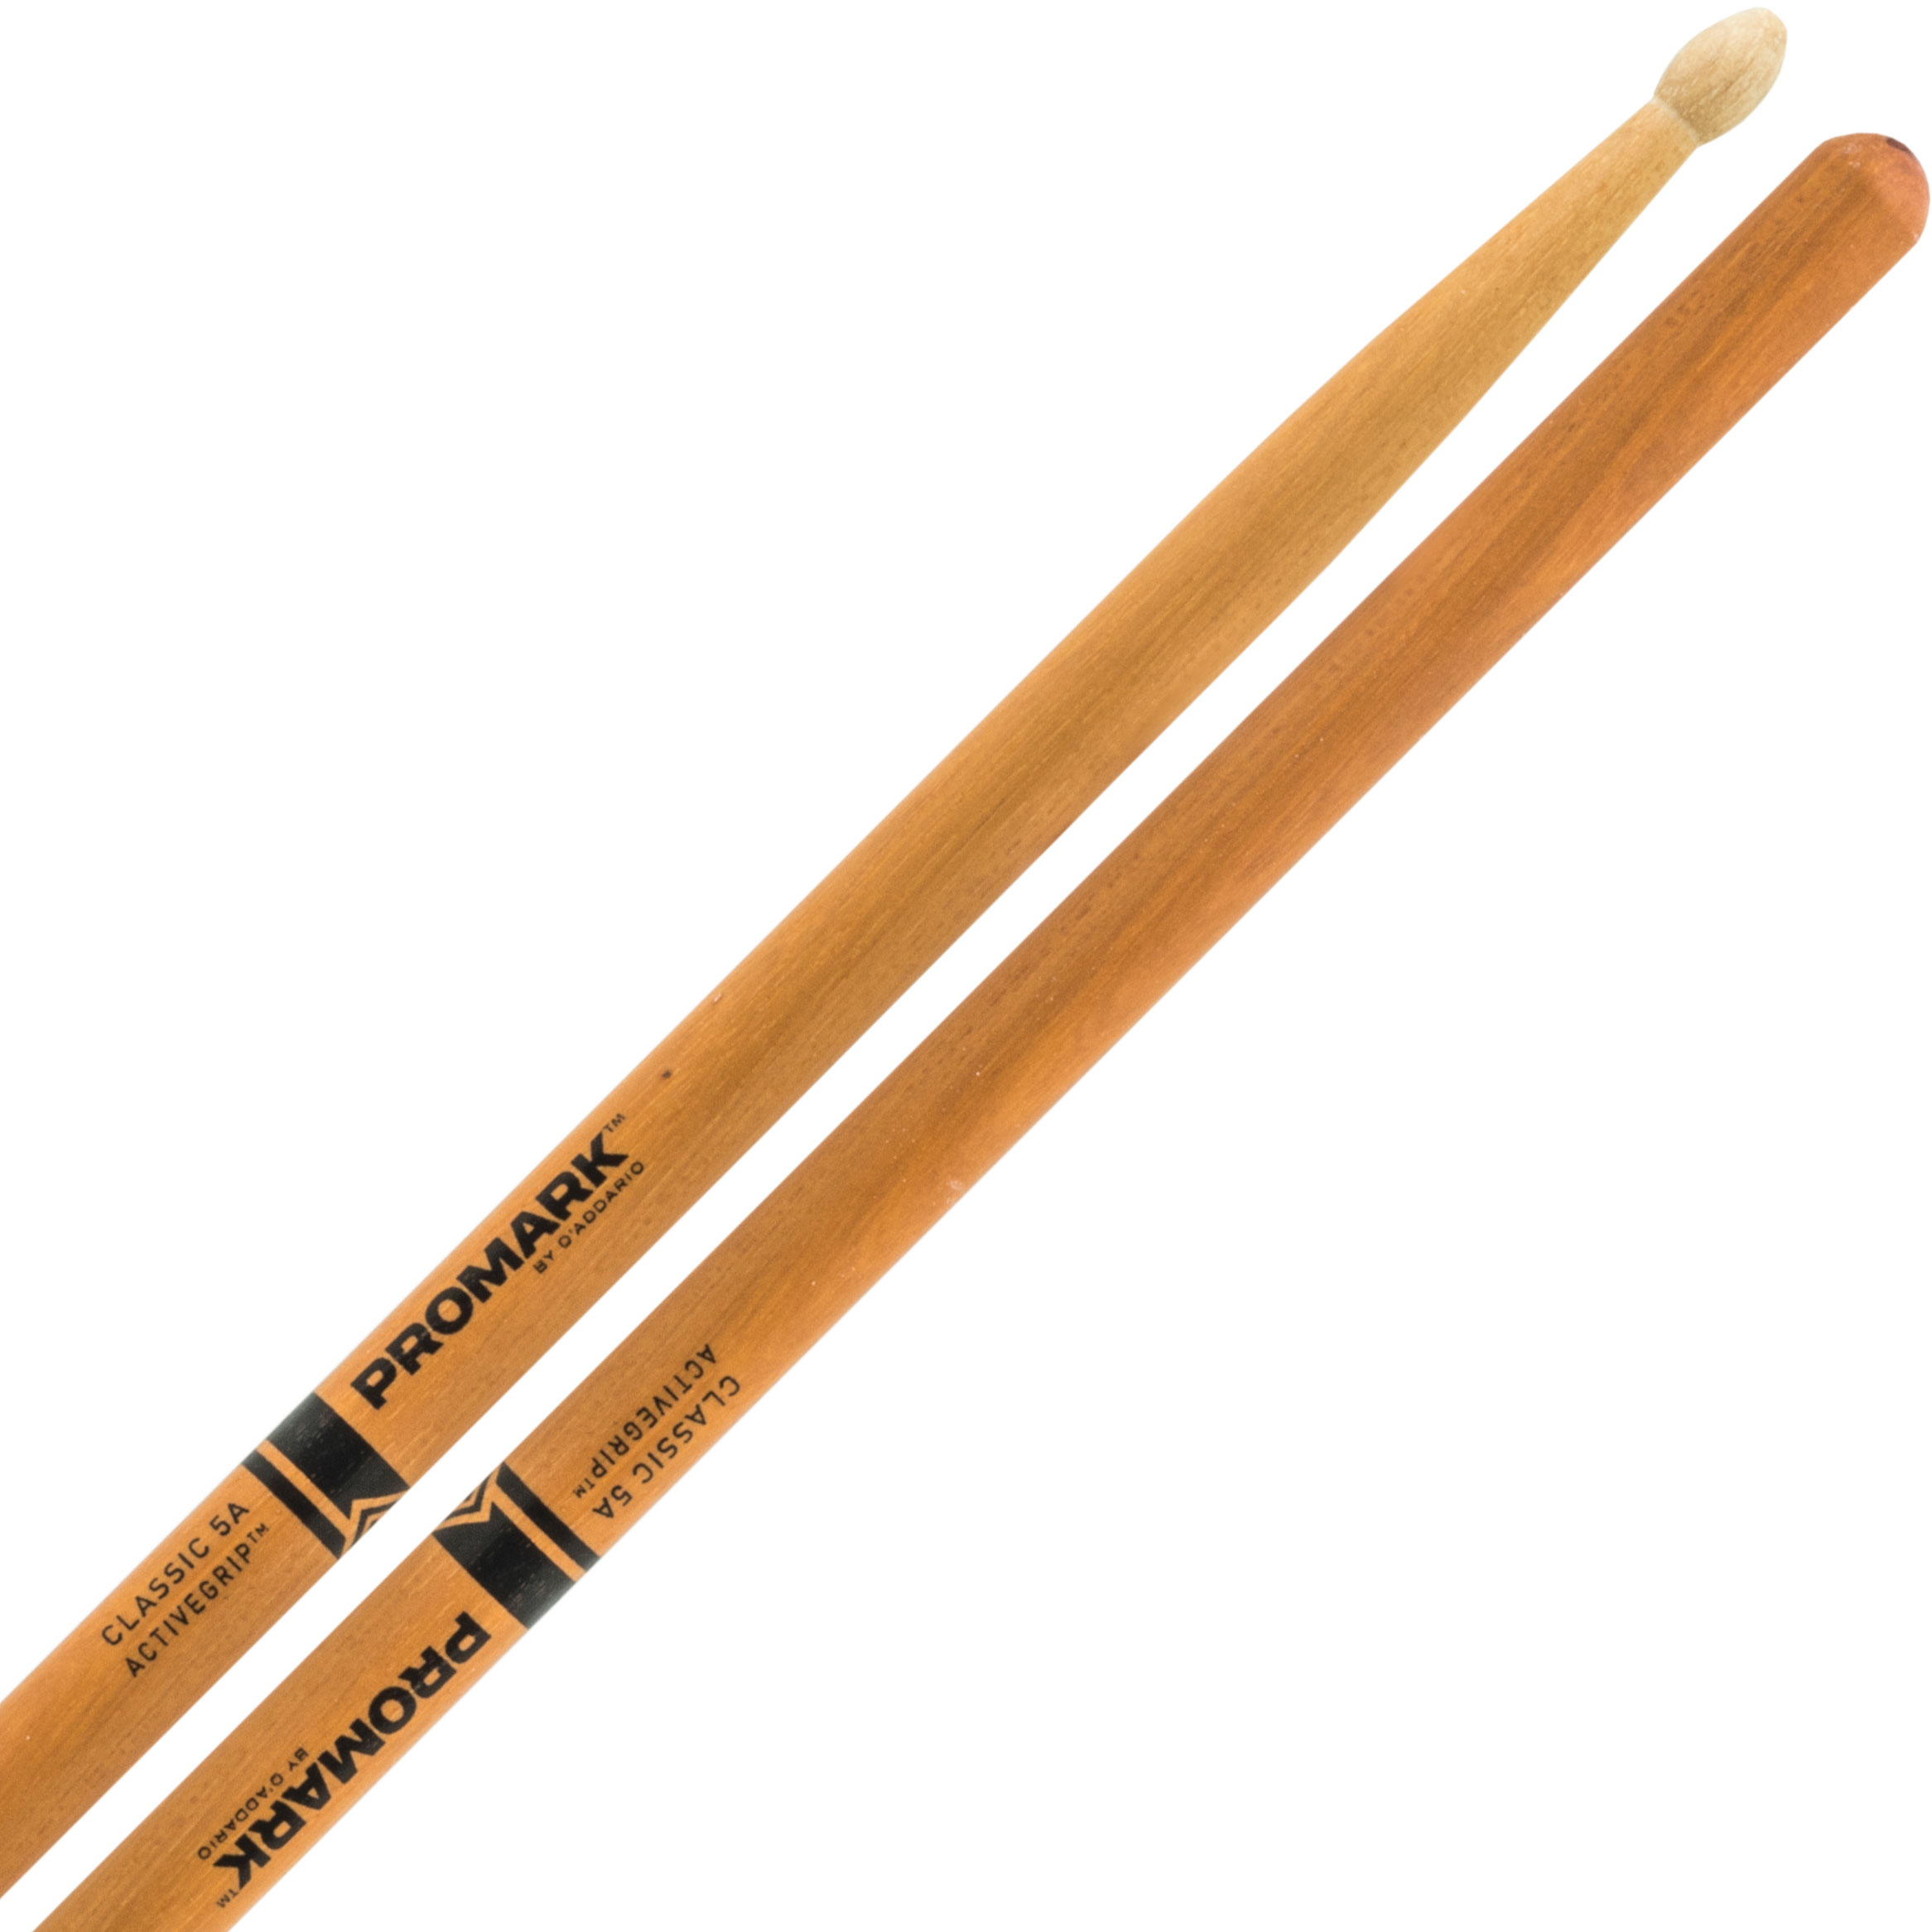 Promark Classic 5A ActiveGrip Clear Hickory Drum Sticks